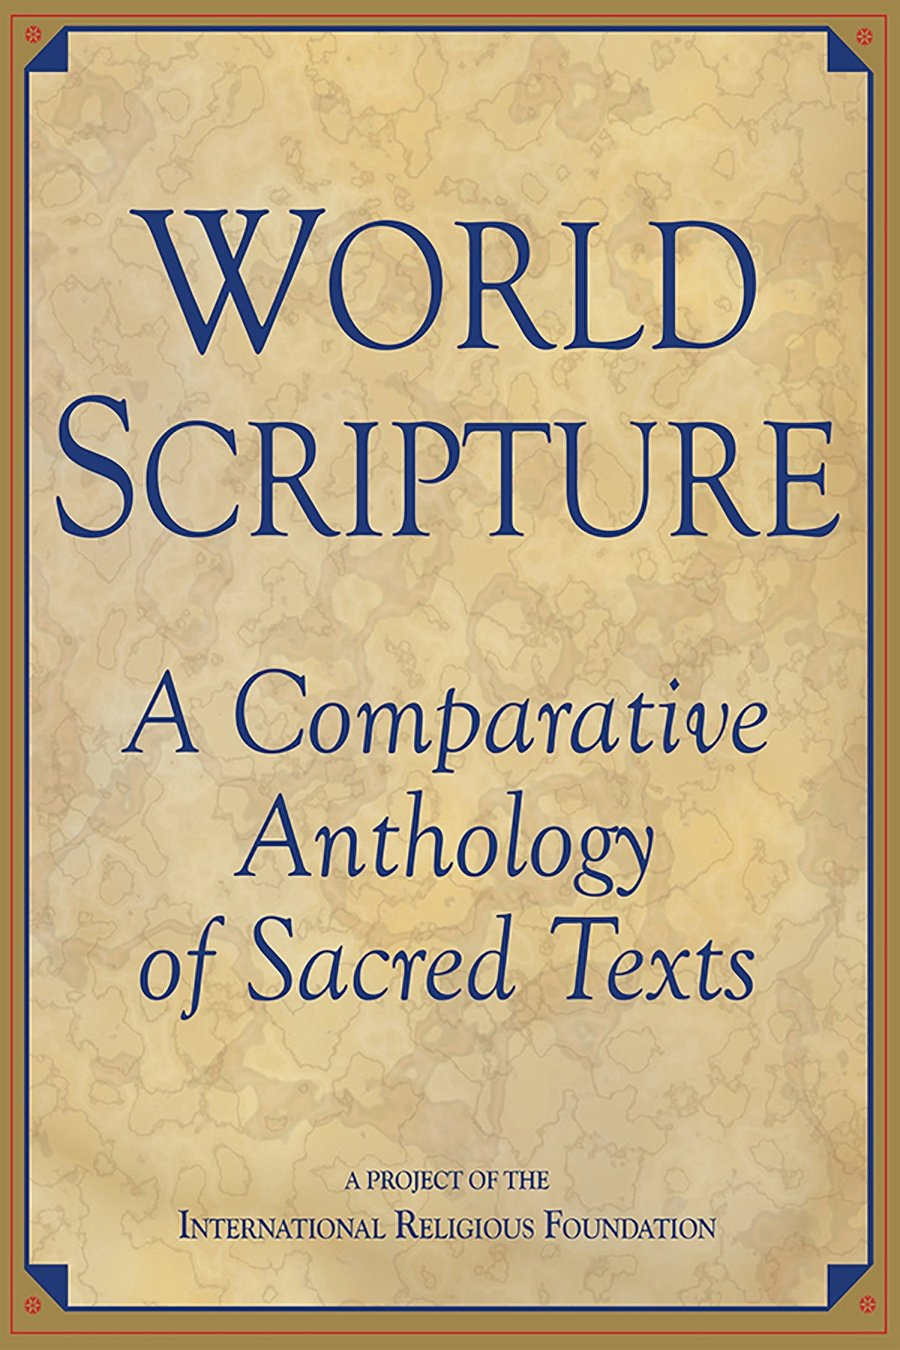 Image result for World Scripture: A Comparative Anthology of Sacred Texts By Andrew Wilson